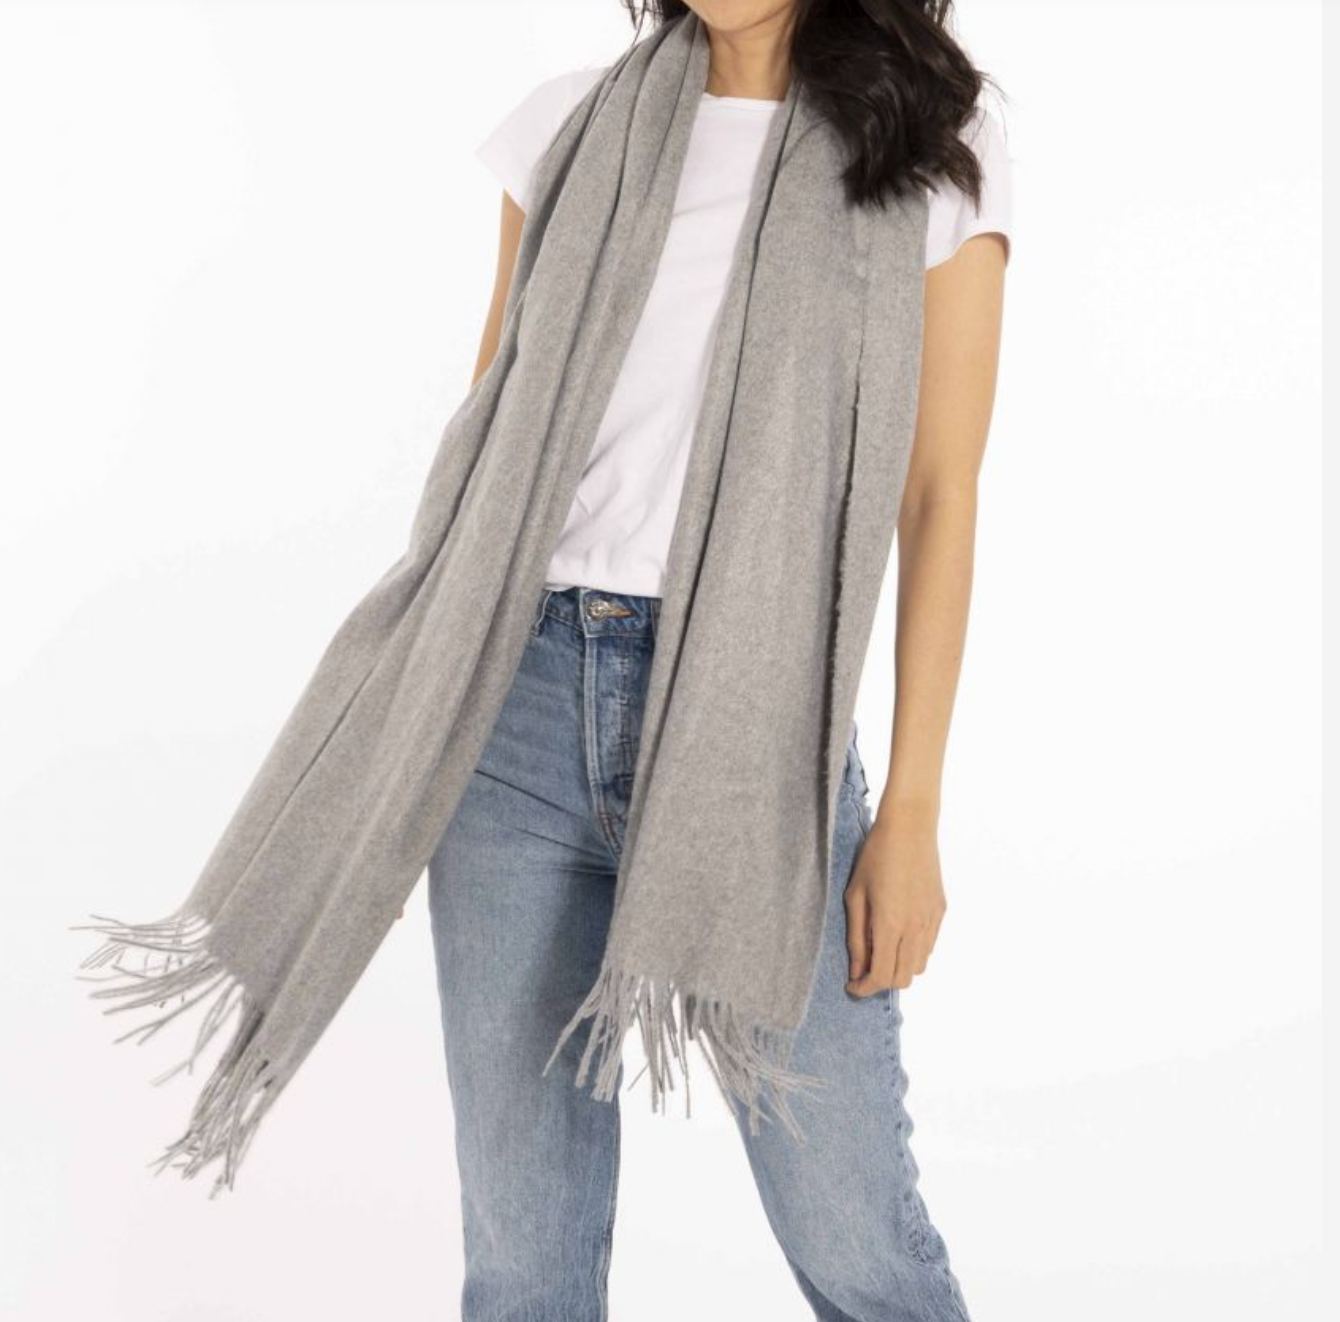 Wrapped Up In Love - Boxed Scarf in Grey